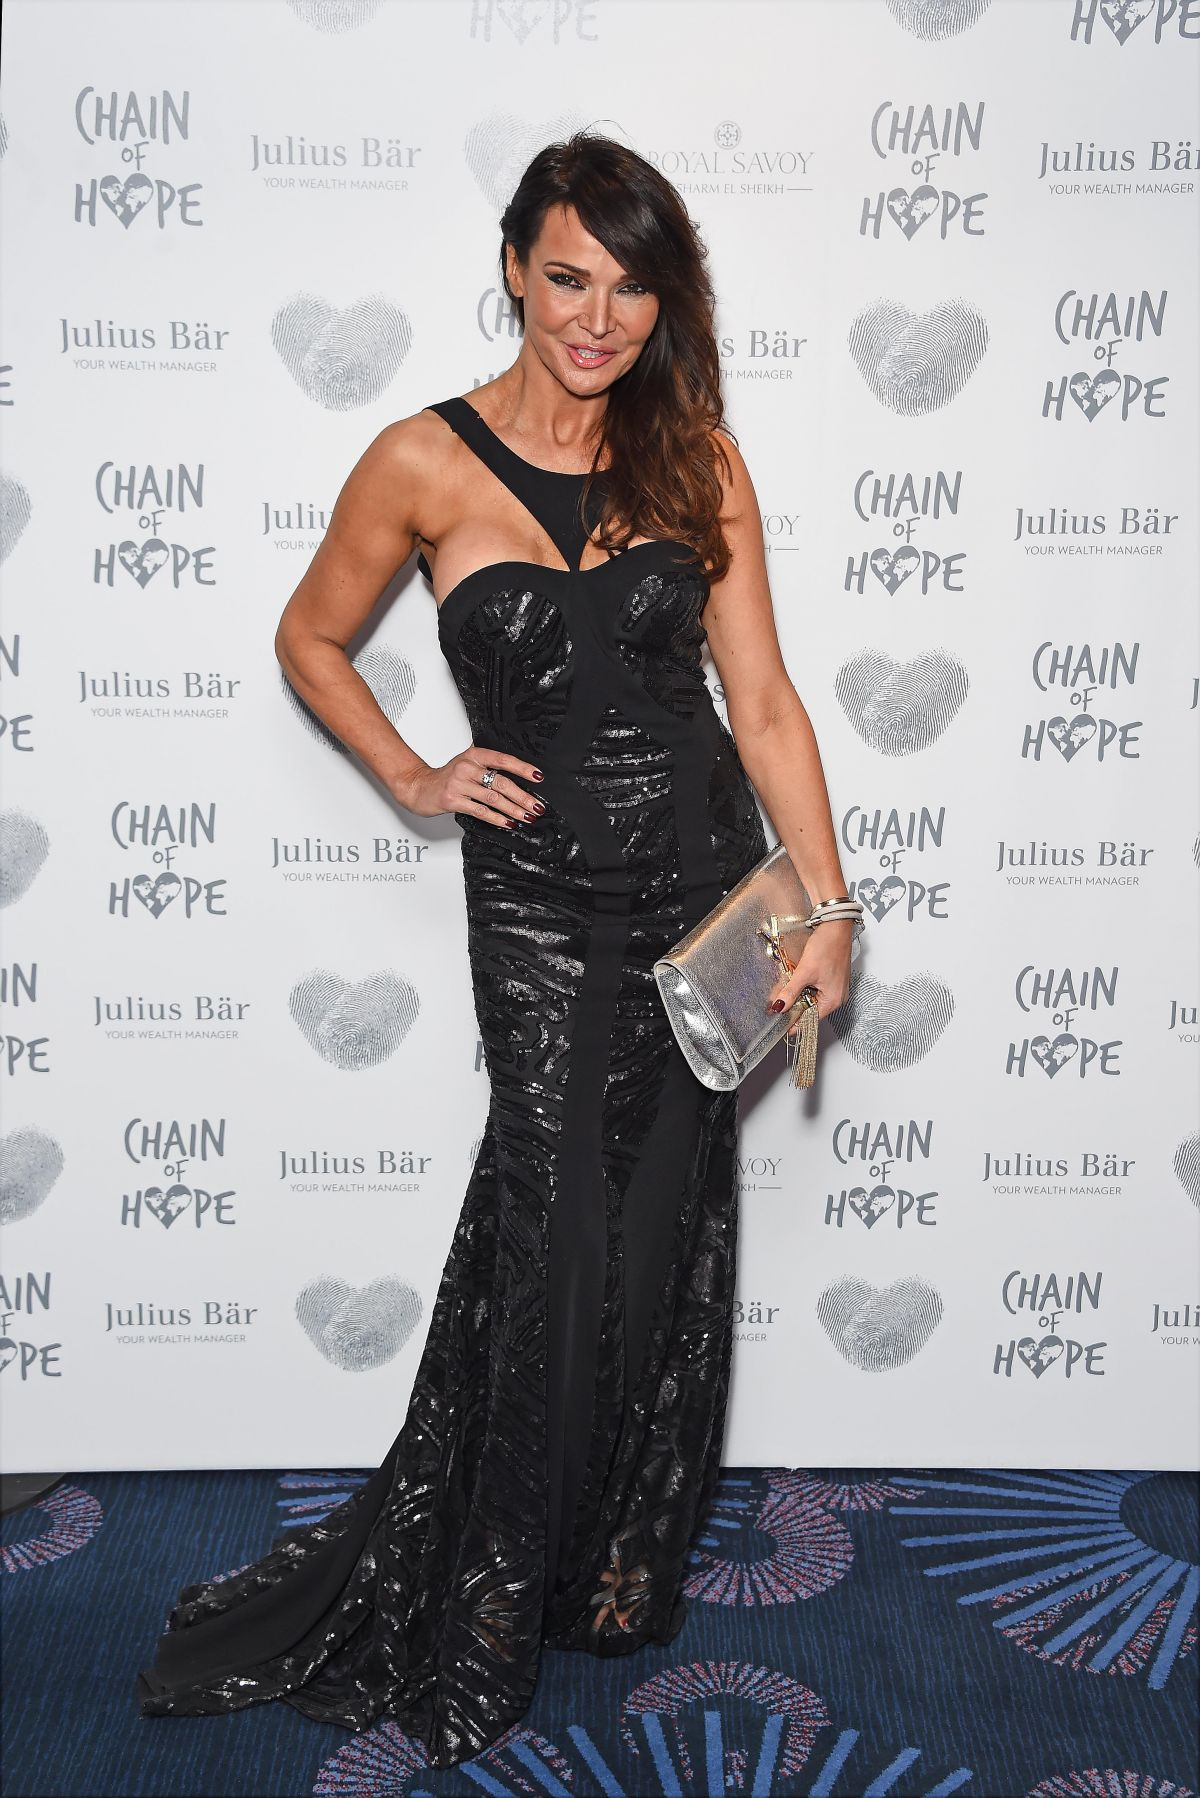 LIZZIE CUNDY at Chain of Hope Annual Ball in London 11/20/2015